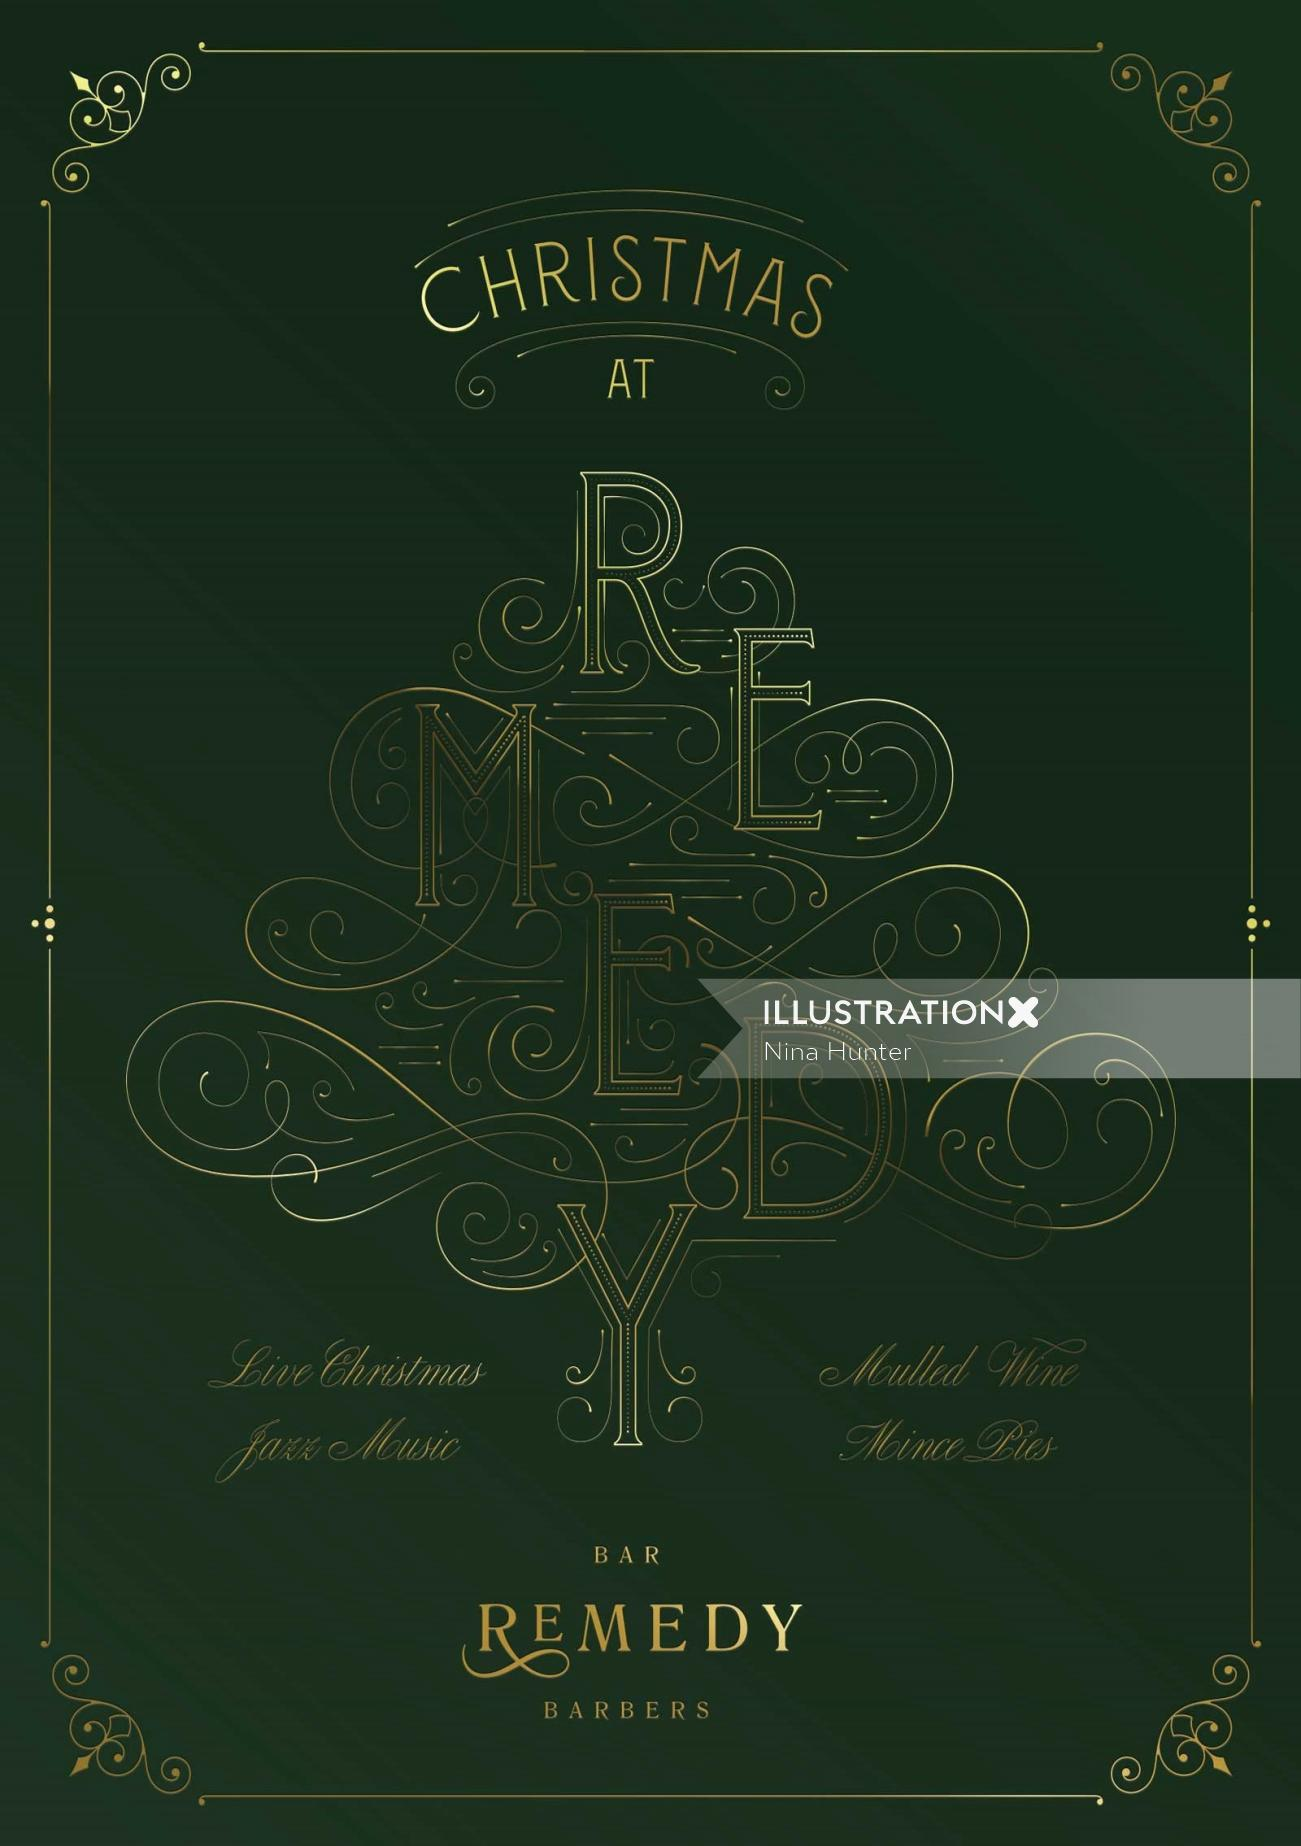 Christmas at Remedy decorative illustration